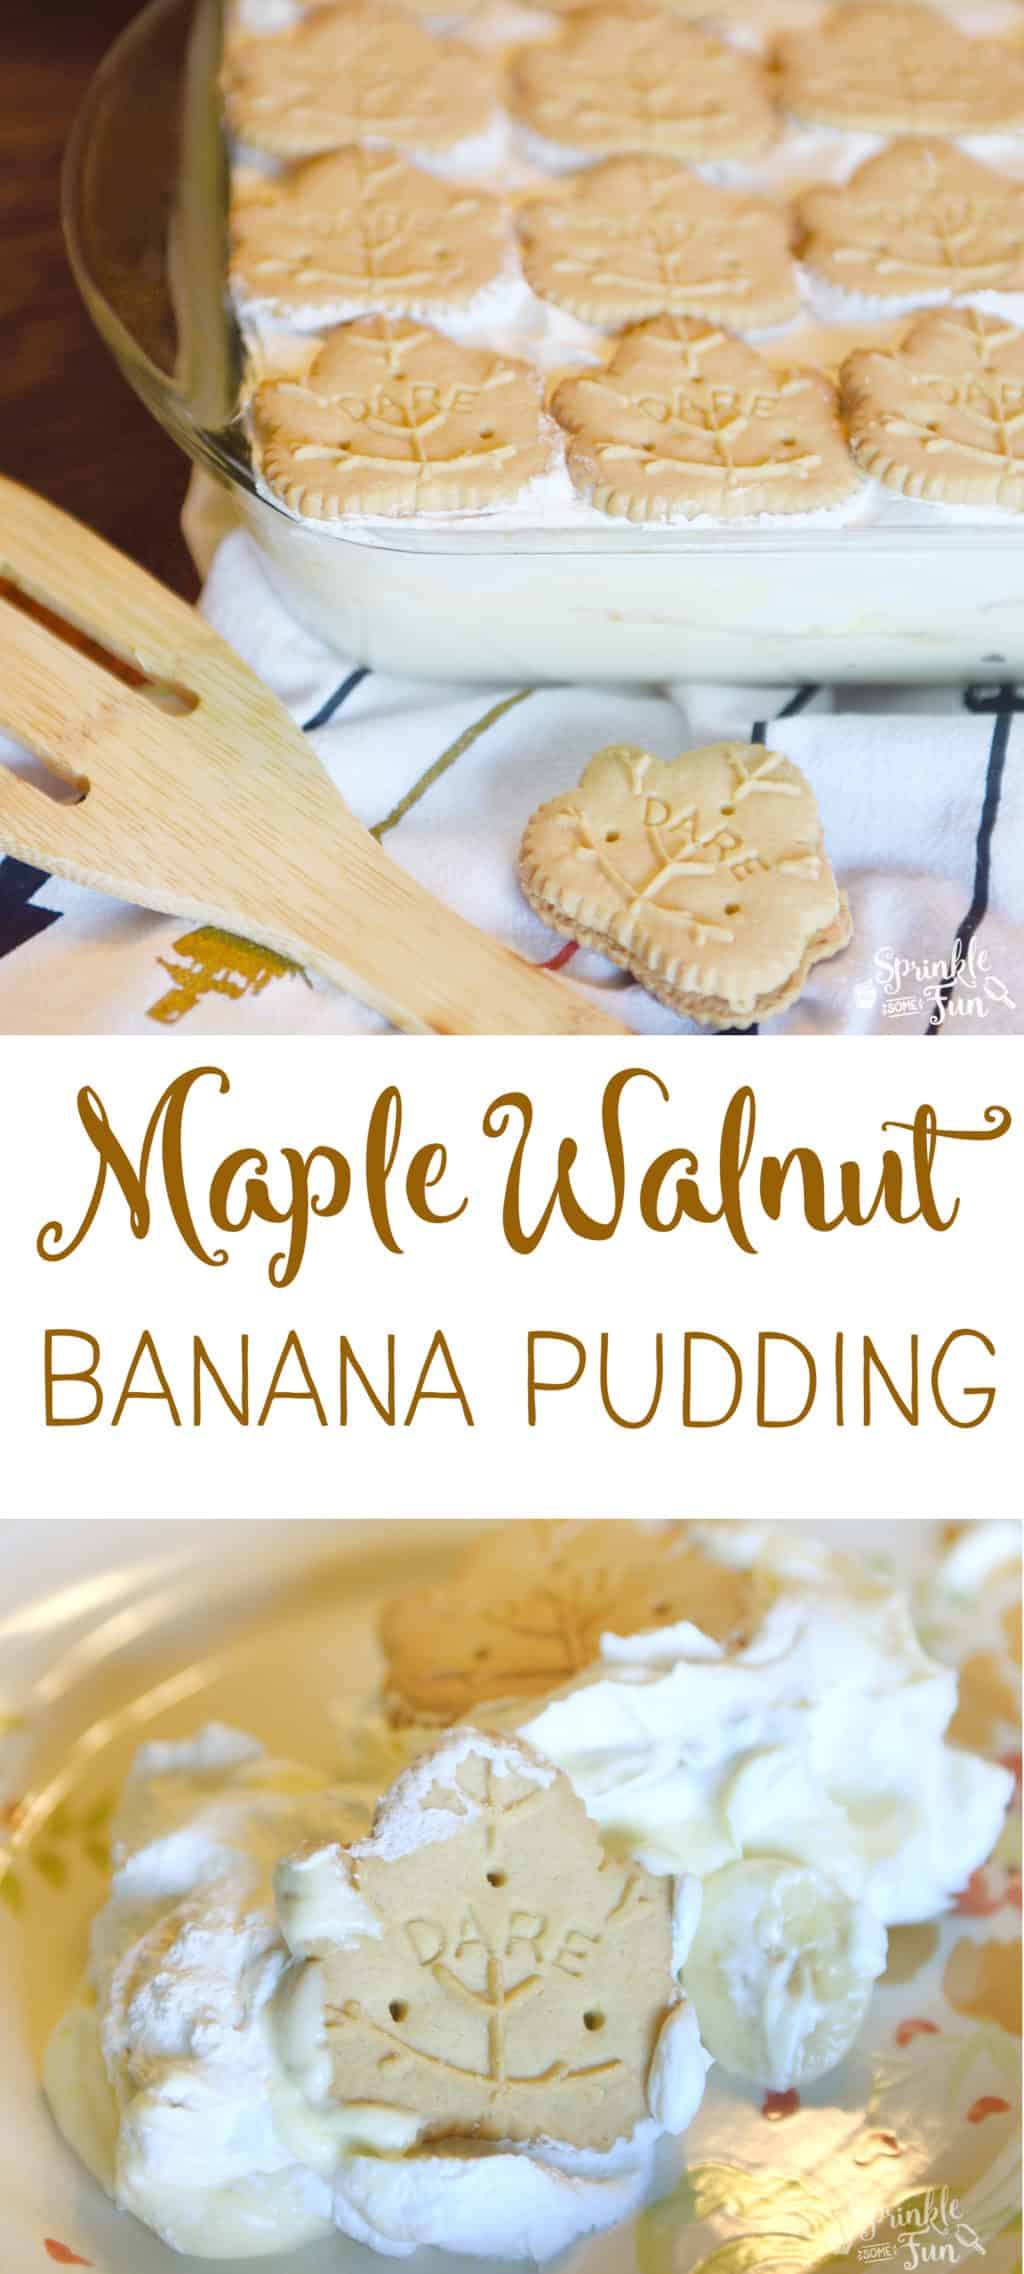 Maple Walnut Banana Pudding is new take on banana pudding. The sweet hints of maple and nuts really made this banana pudding spectacular.